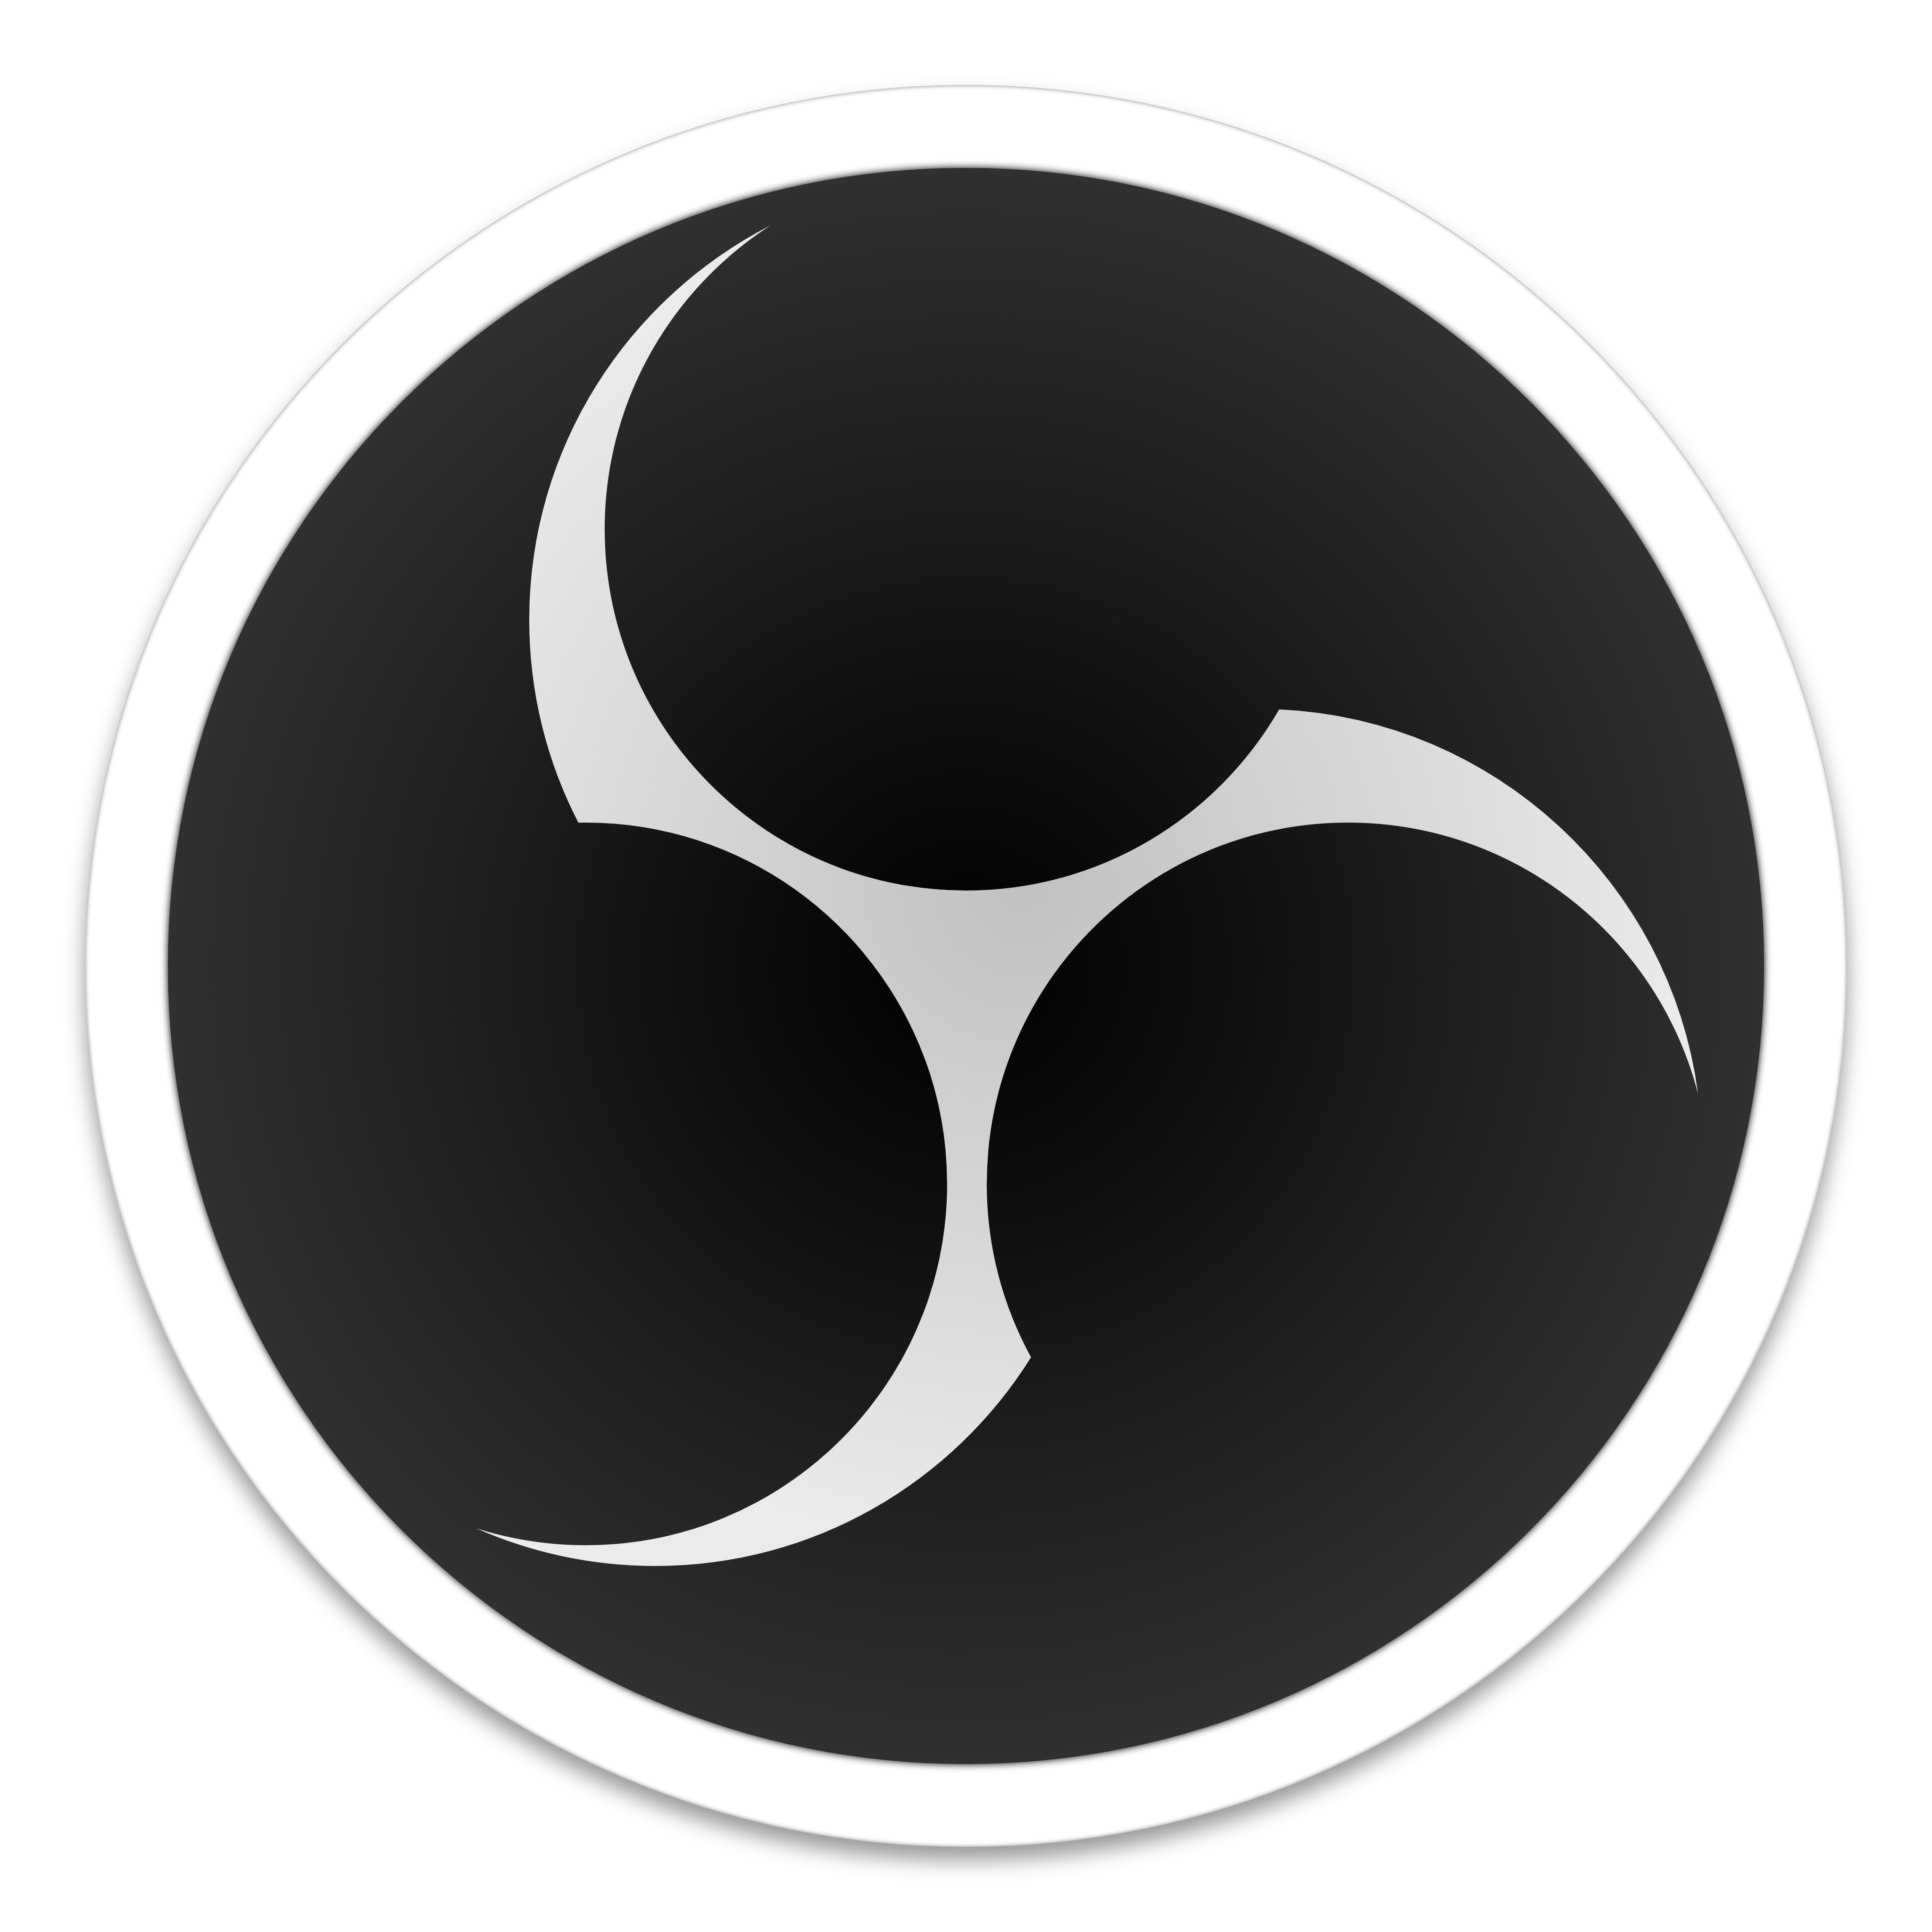 Open Broadcaster Software - Wikipedia